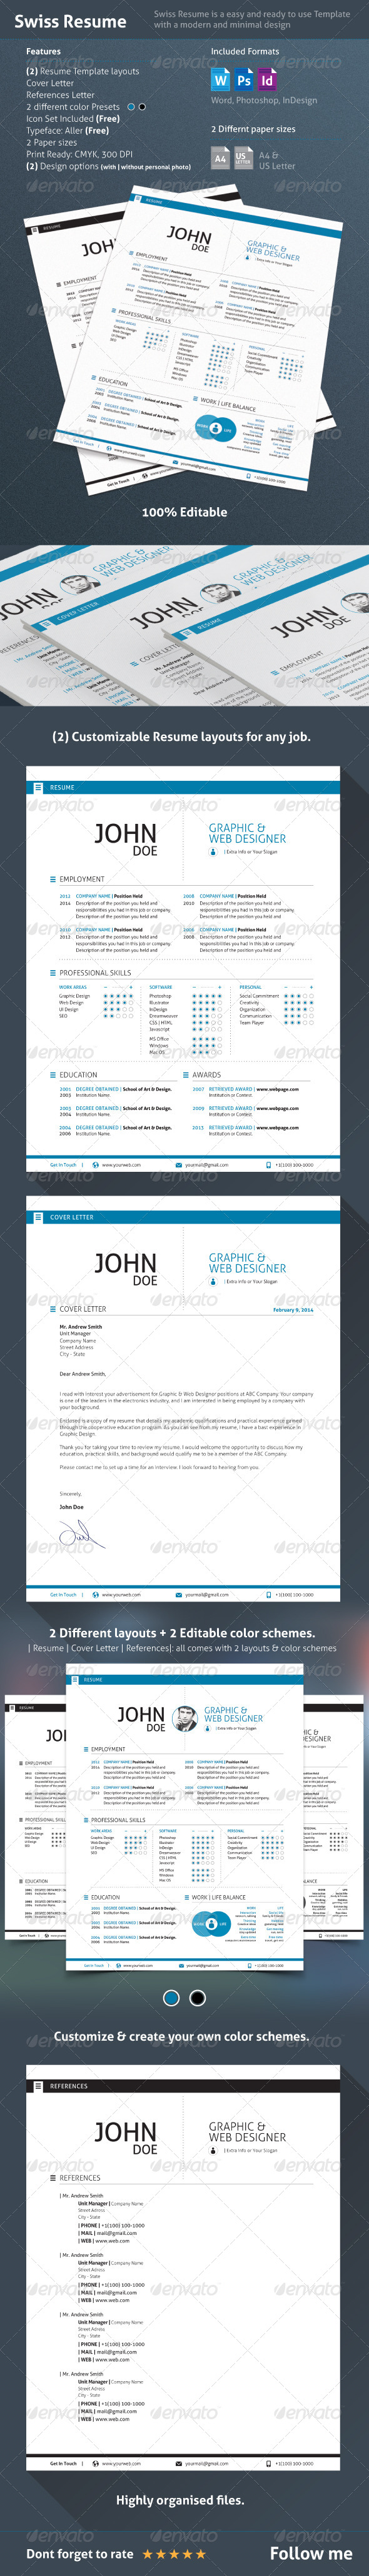 GraphicRiver 3 Piece Swiss Style Resume 7241774